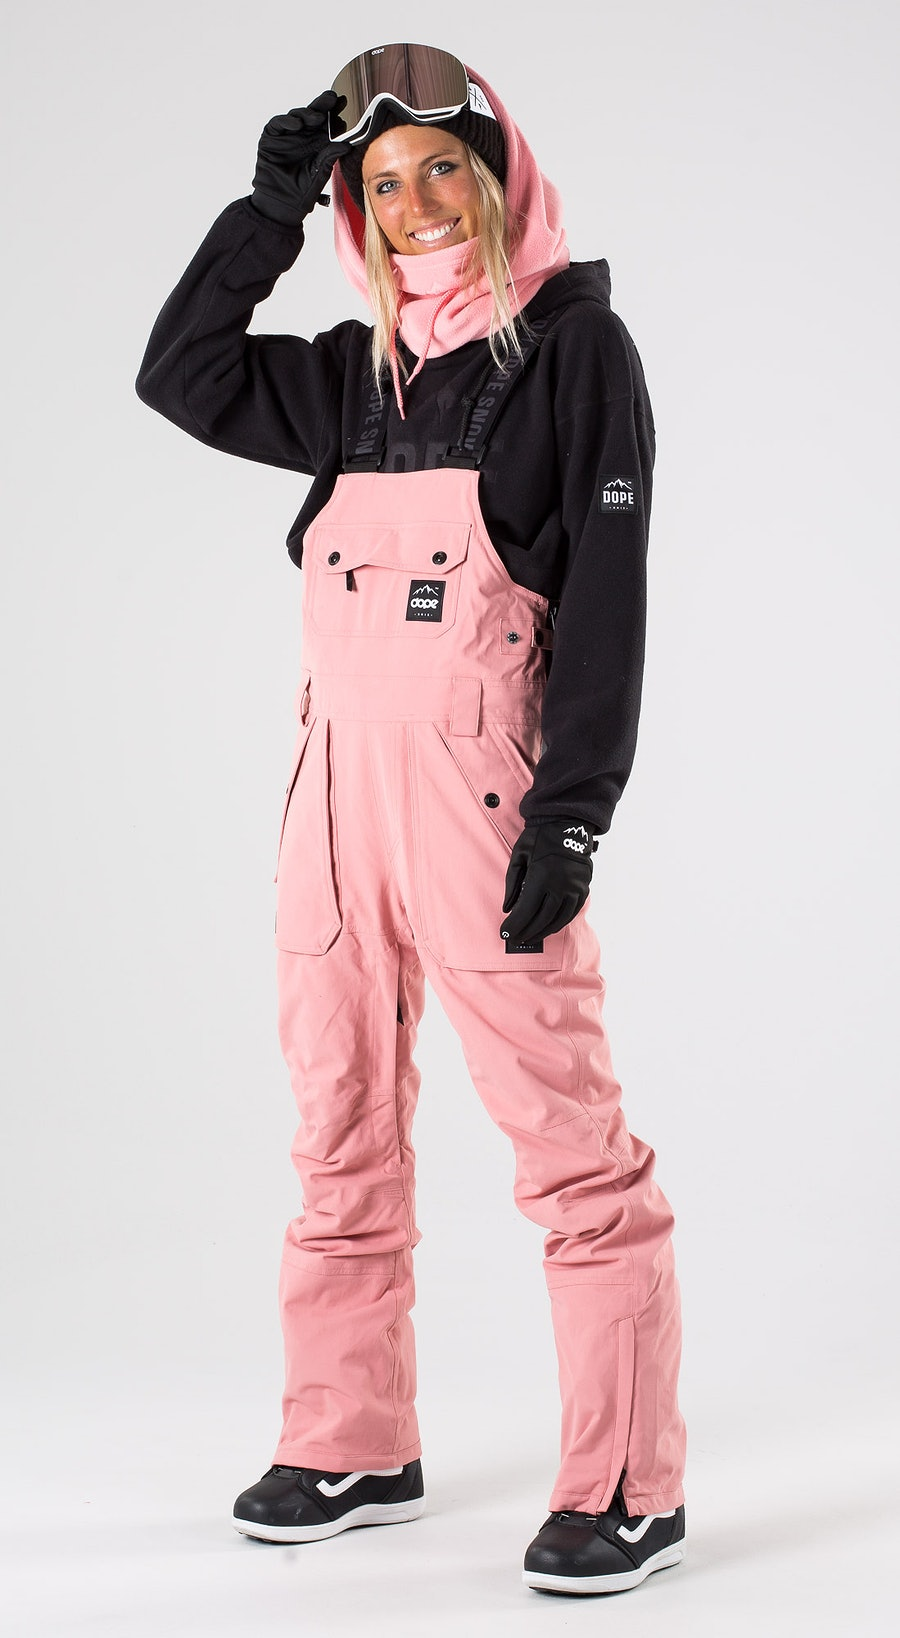 Dope Yeti W Black Vêtements de Snowboard  Multi